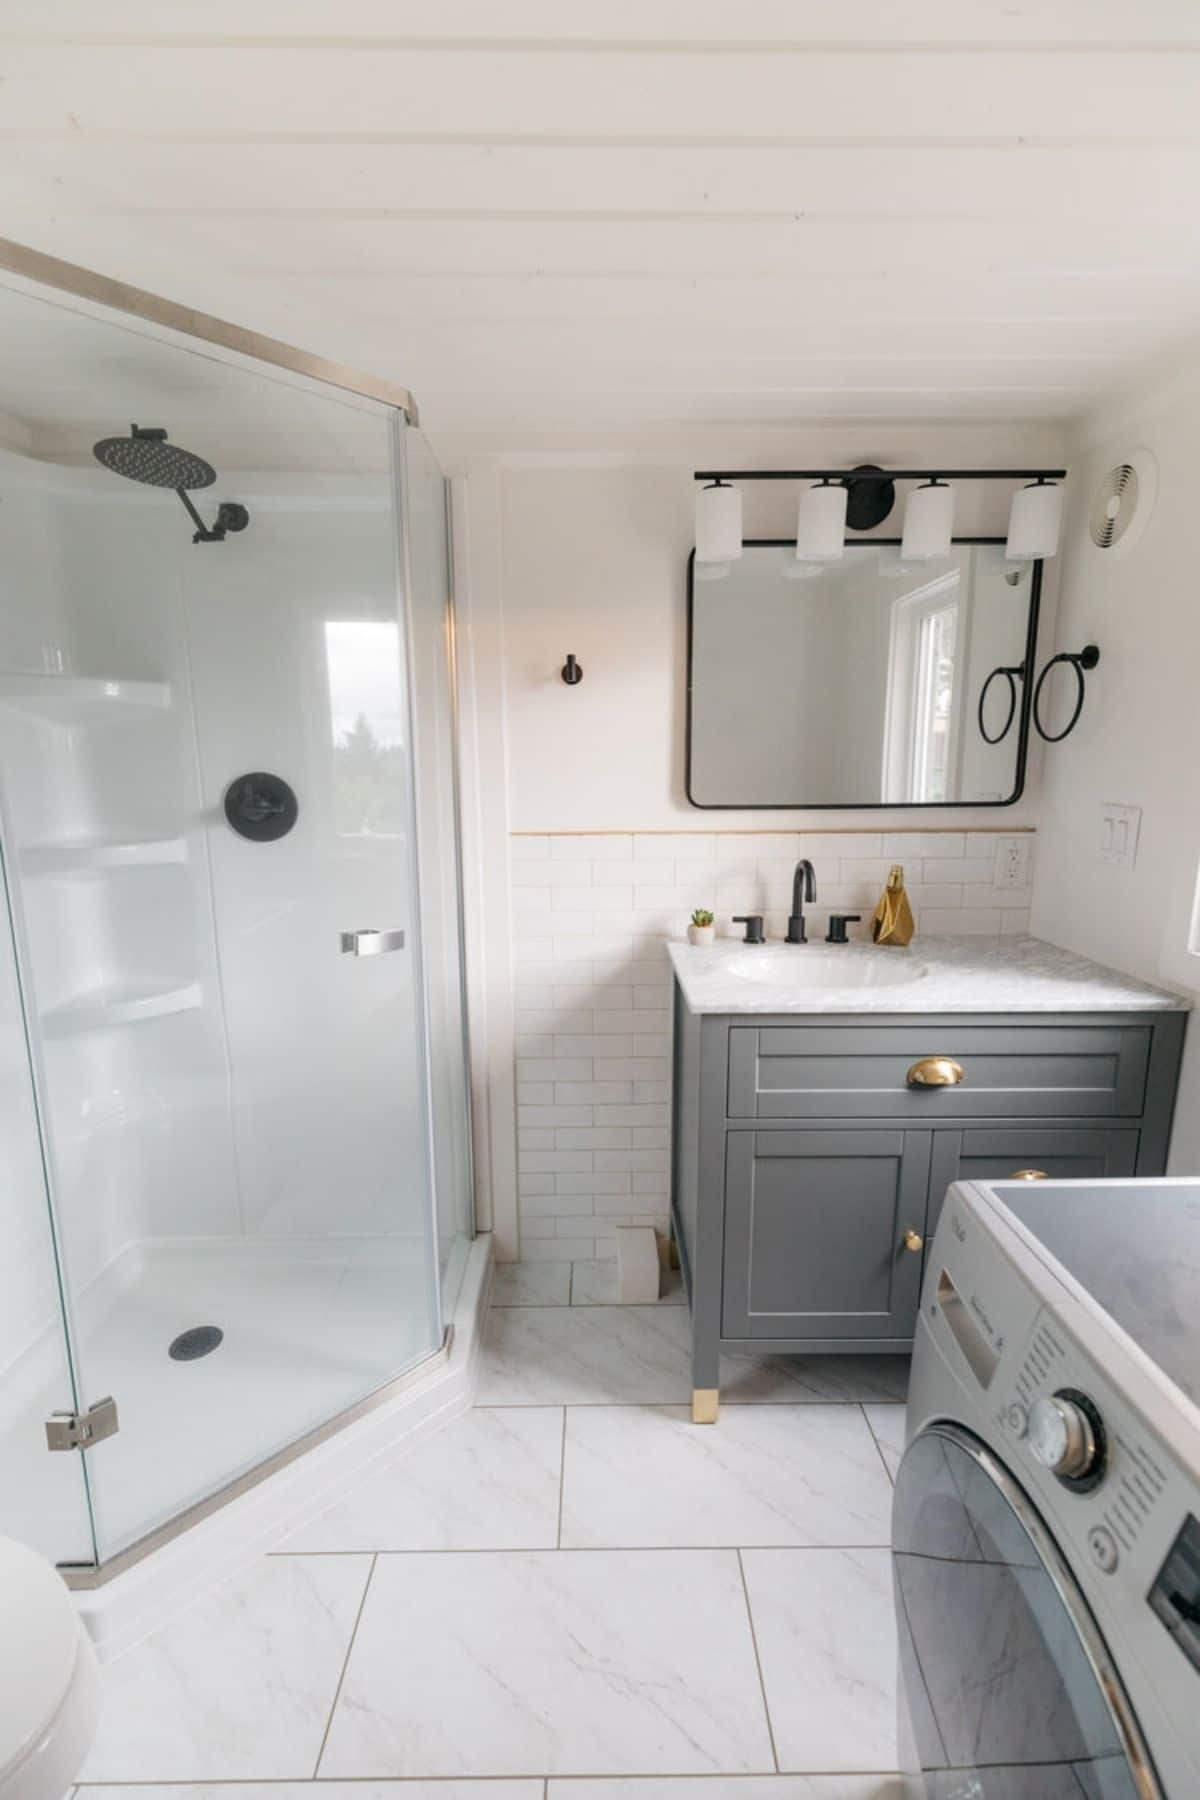 Bathroom with washing machine in foreground and corner glass shower in background